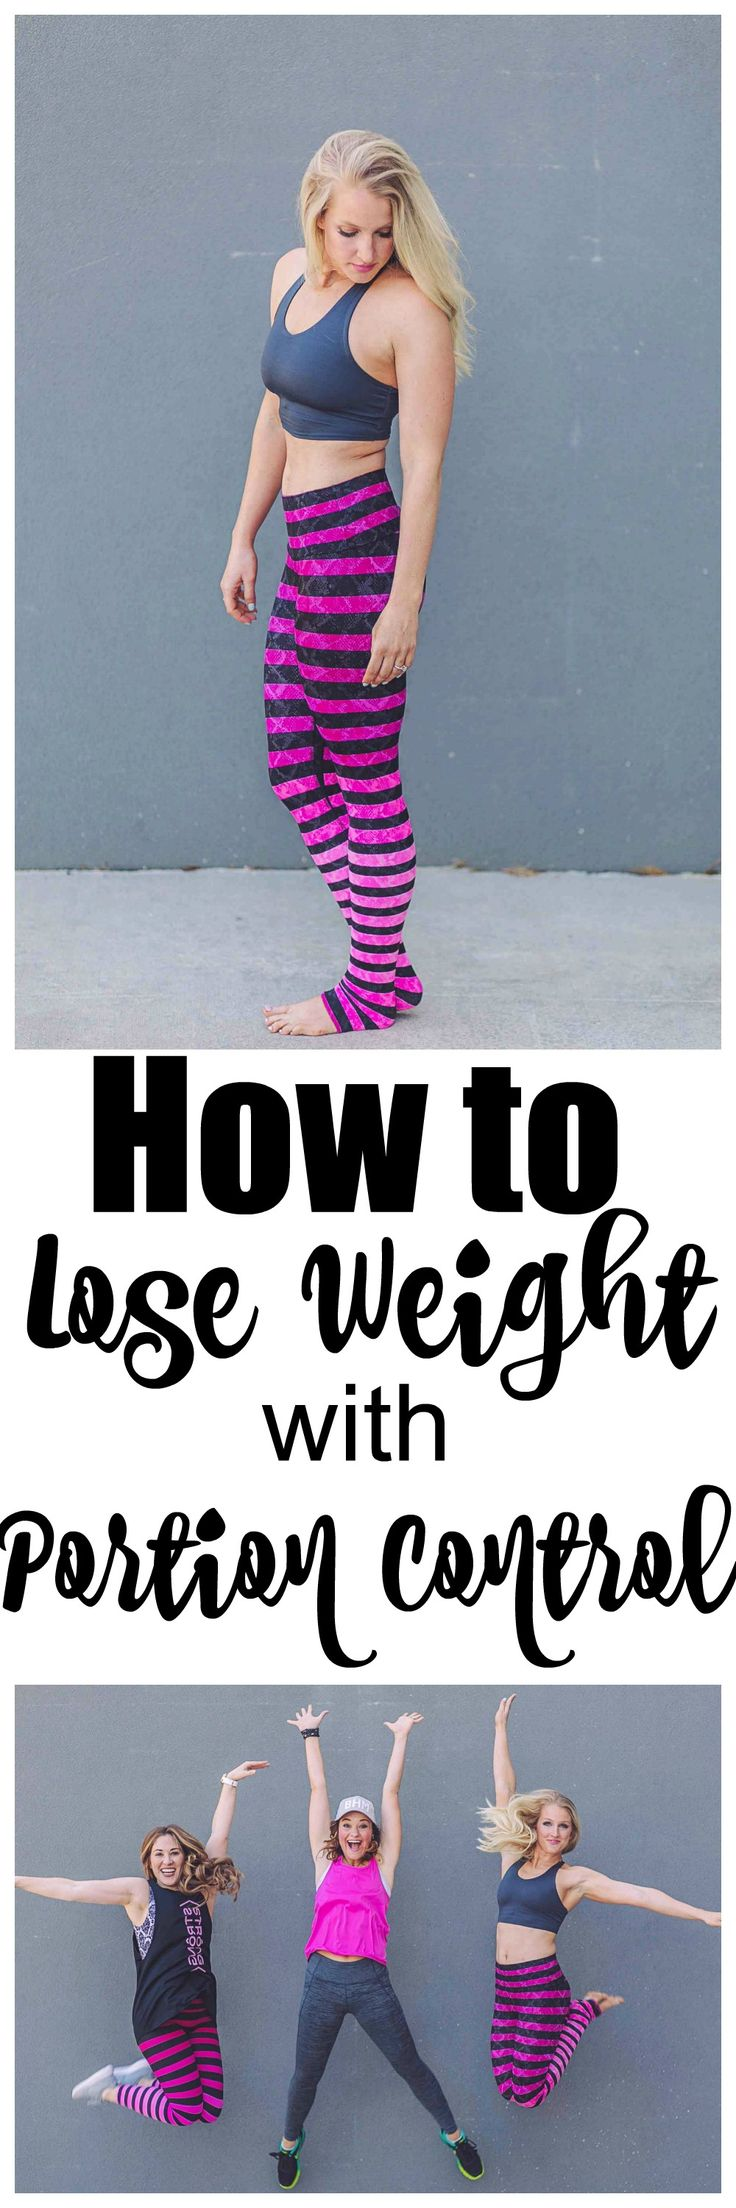 How to Lose Weight with Portion Control